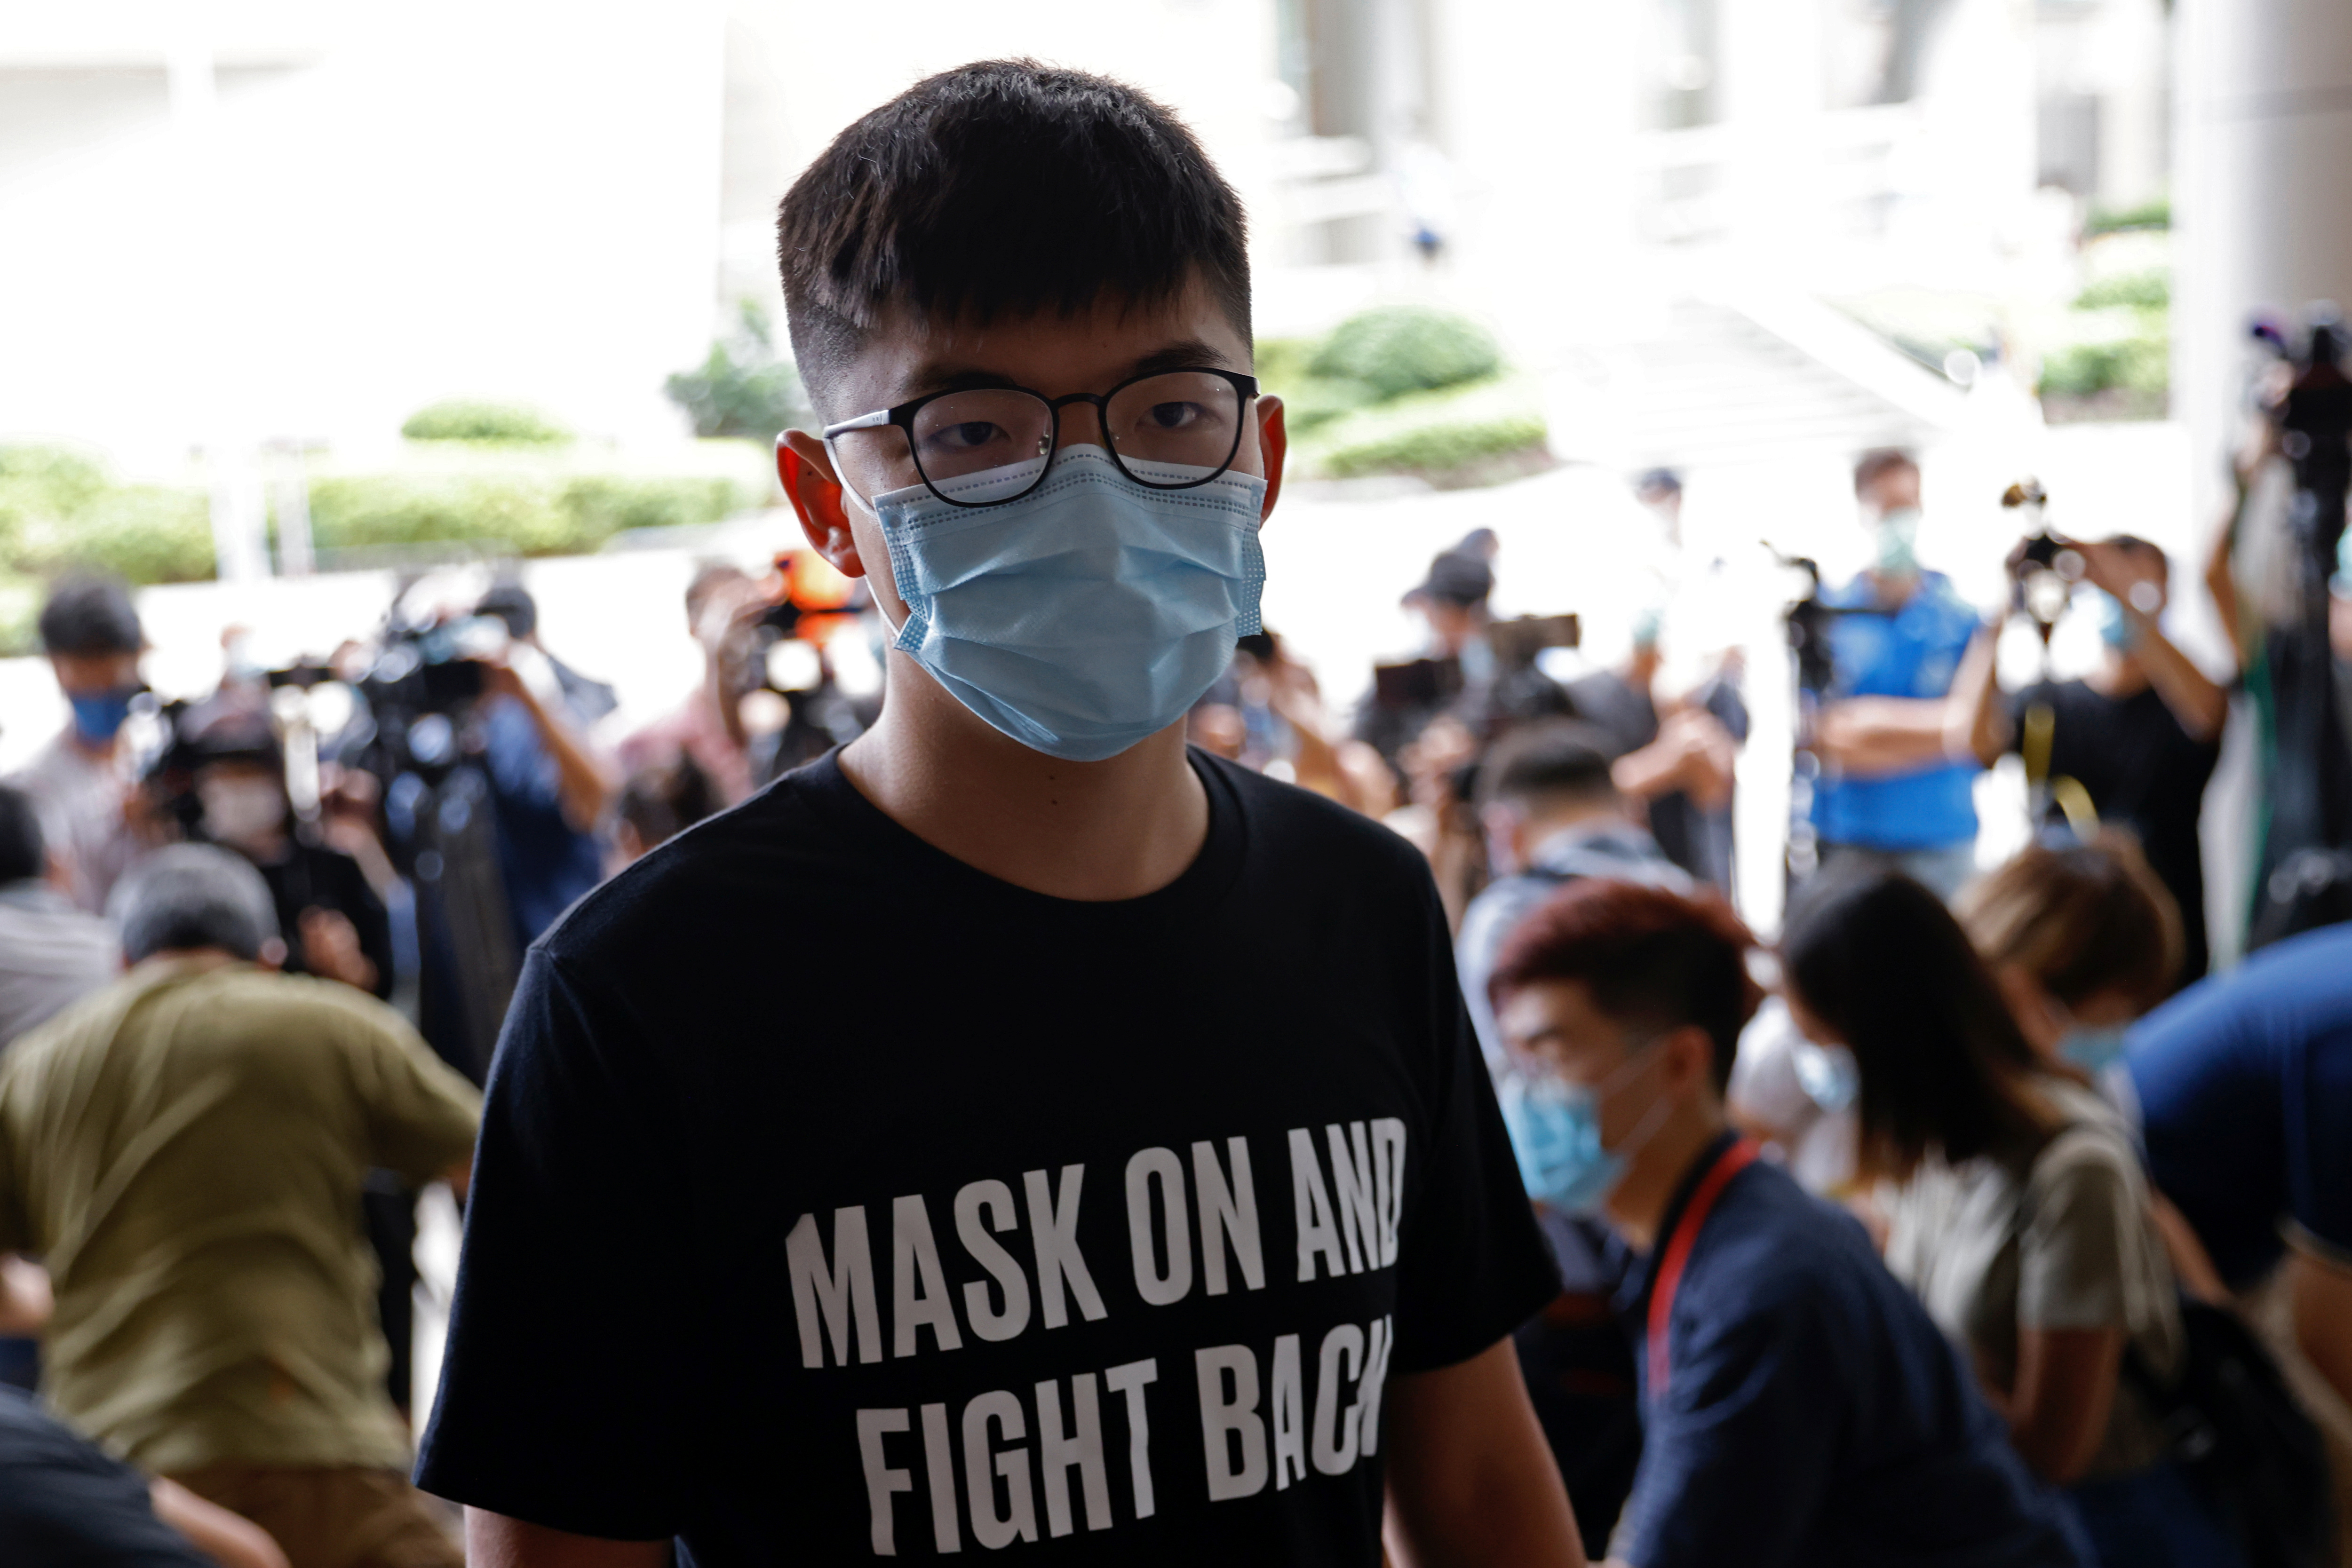 Pro-democracy activist Joshua Wong arrives at the Eastern Magistrates' Courts over illegal assembly and violation of an emergency law banning face coverings last year, in Hong Kong, China September 30, 2020. REUTERS/Tyrone Siu